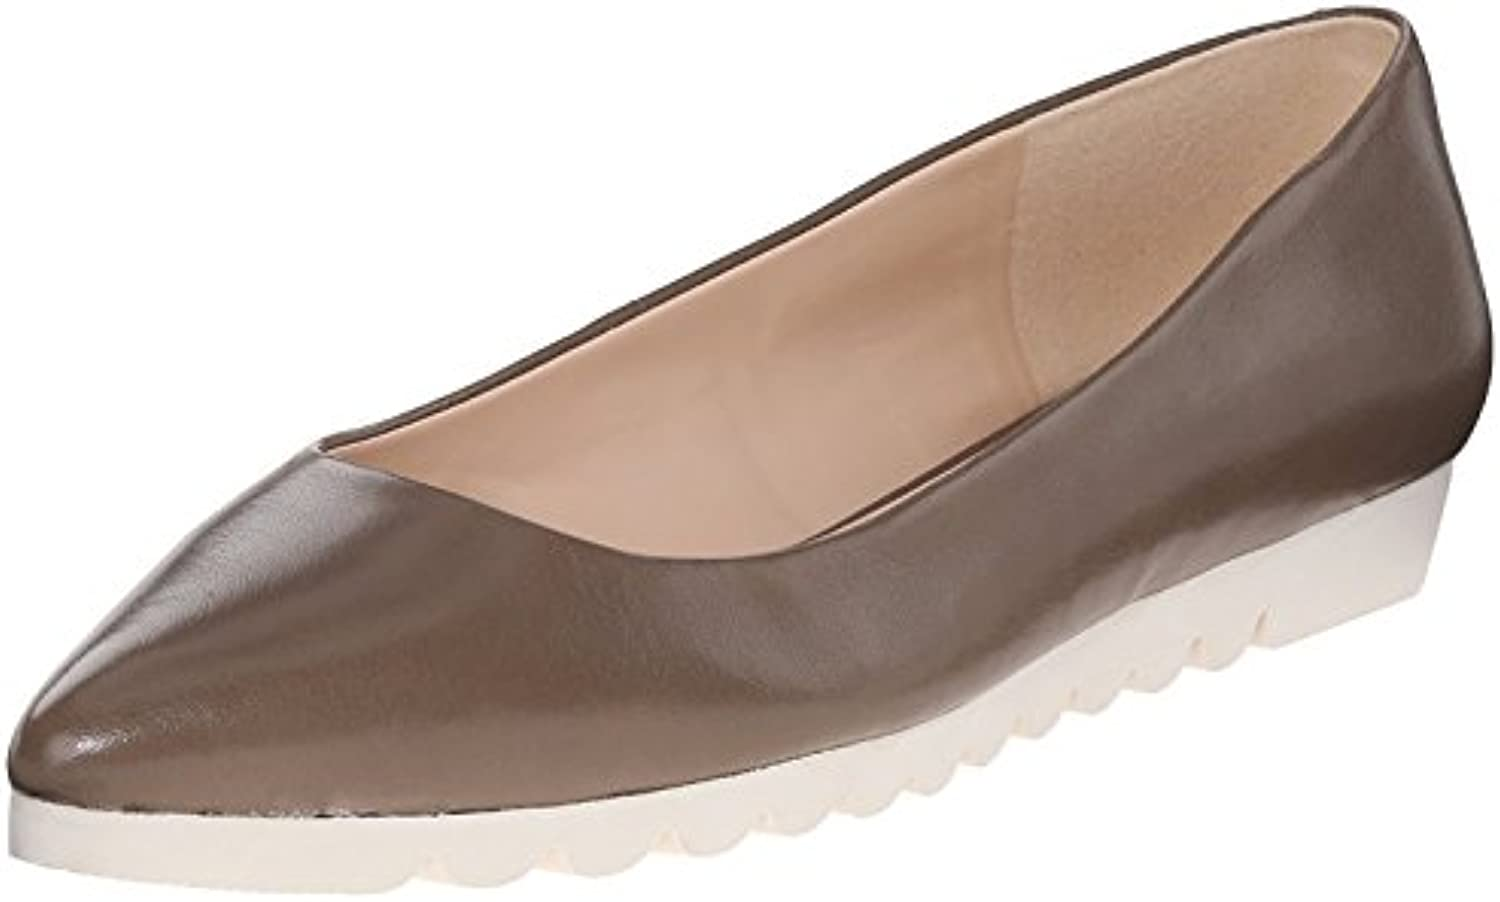 Nine West Women'S Underway Leather Ballet Flat, Grey, 38.5 B(M) EU/6.5 B(M) UK